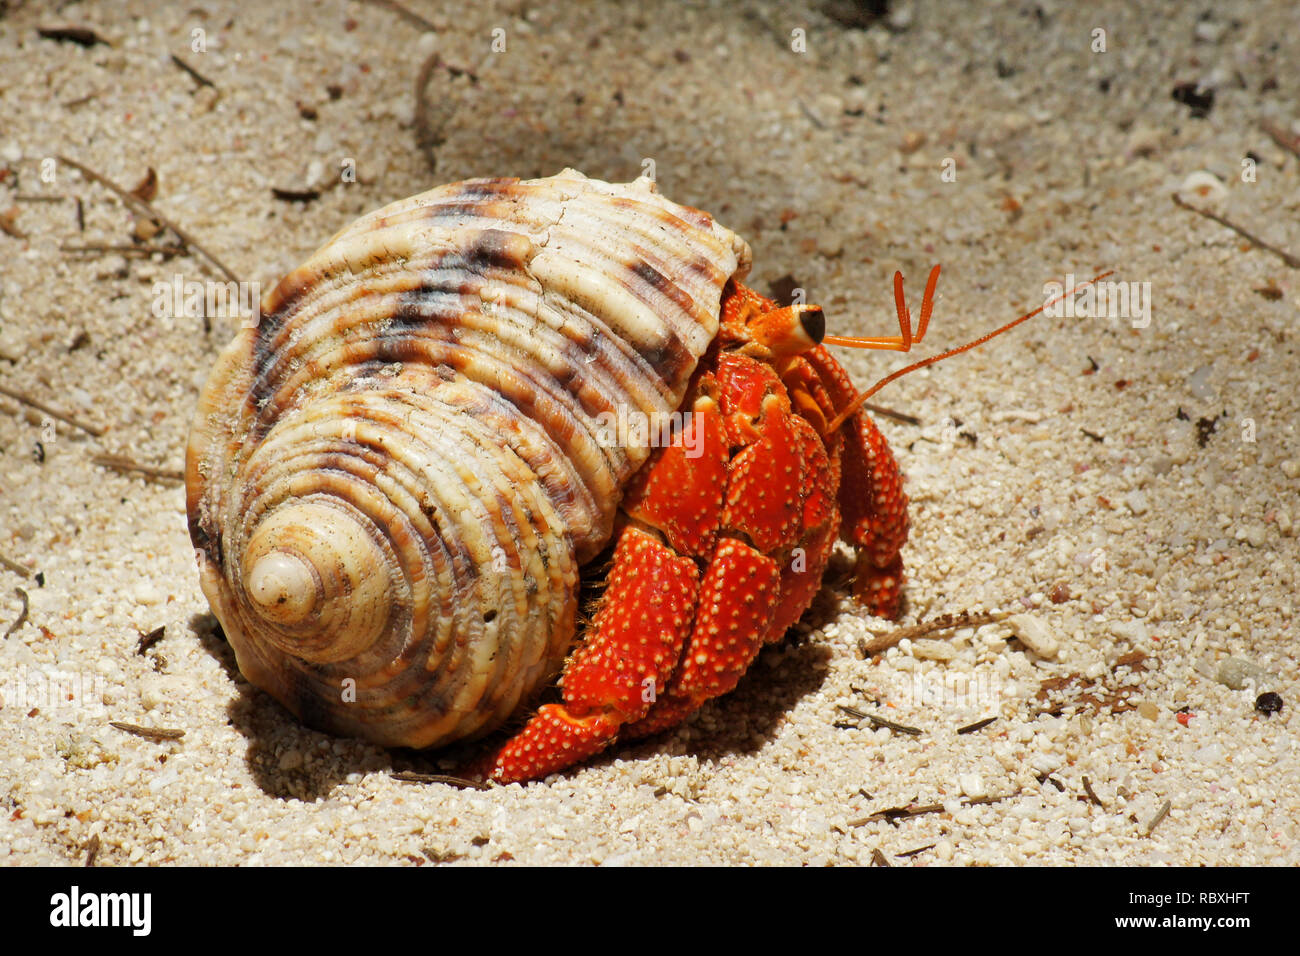 Close-up of a brightly red colored hermit crab (Coenobitidae) carrying a snail shell for protection on the beach - Location: Seychelles - Stock Image